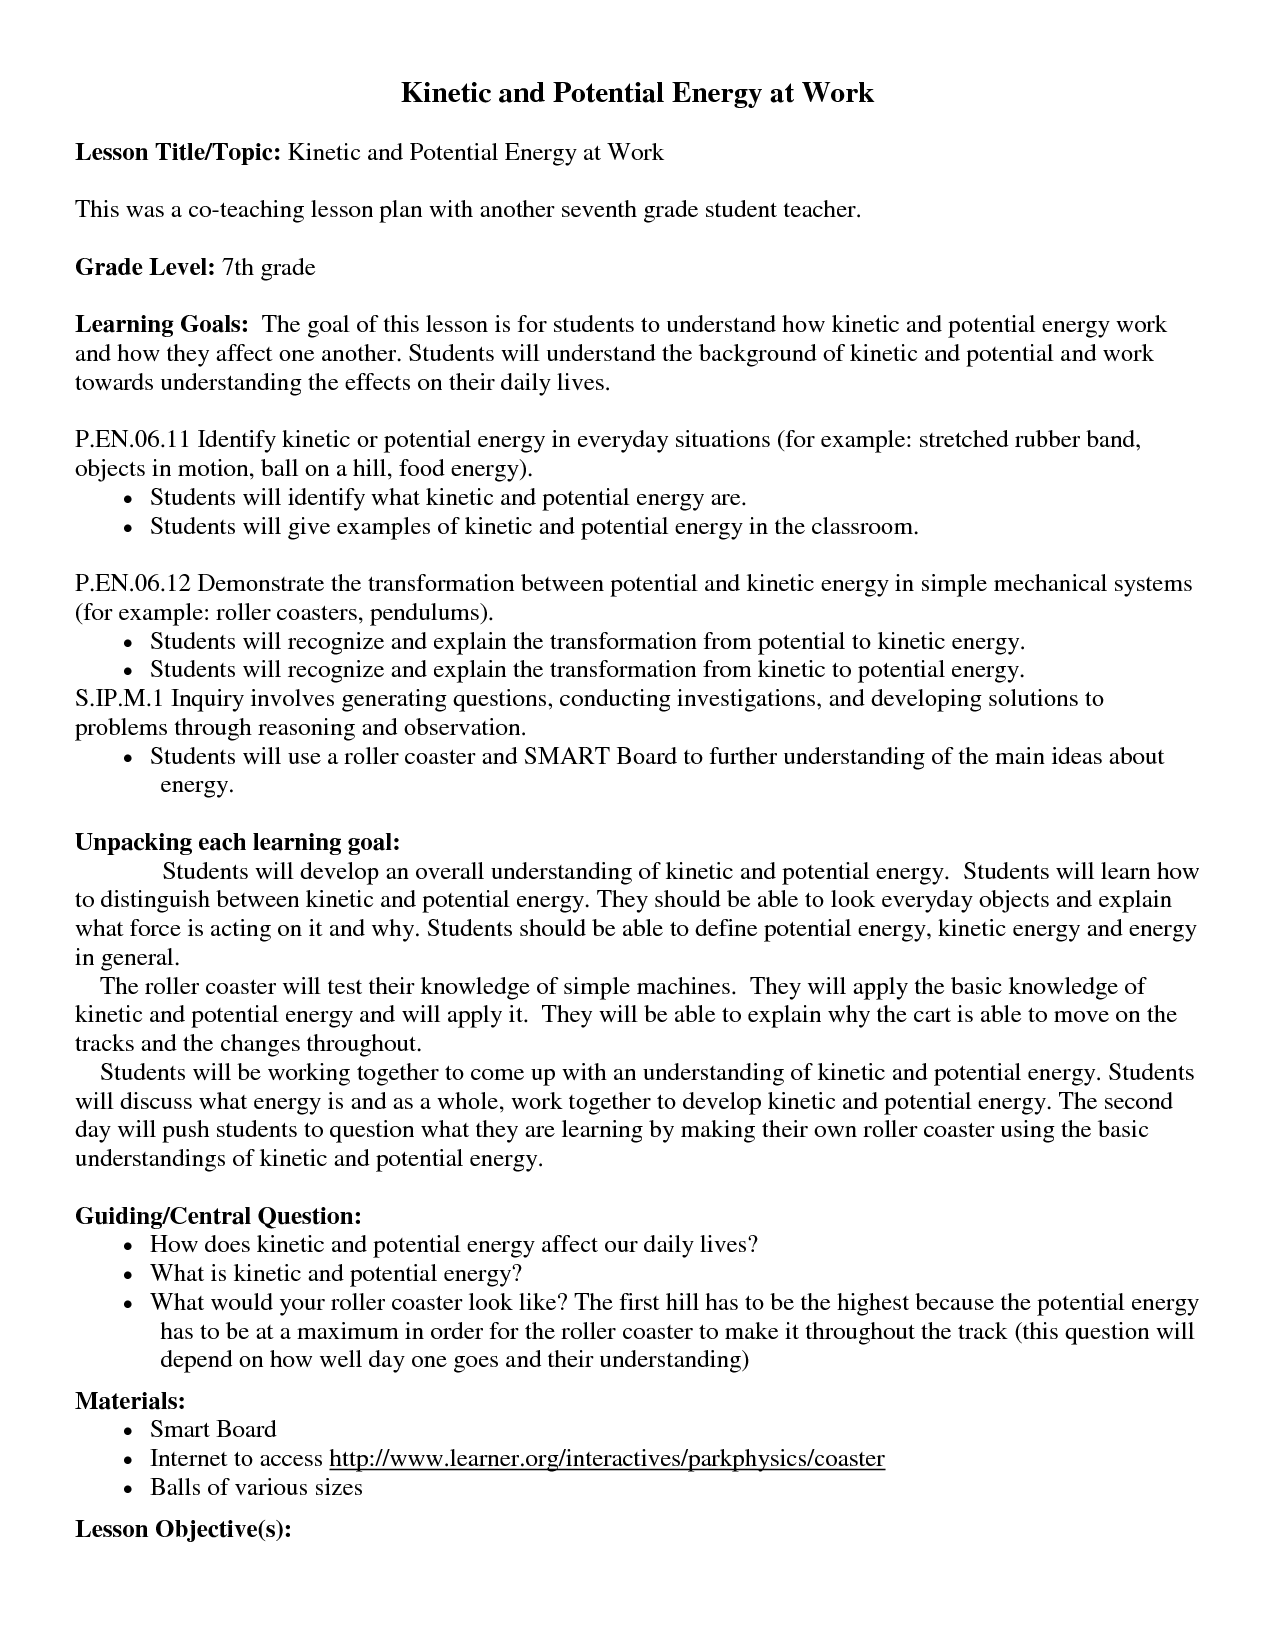 Worksheet Kiic And Potential Energy Worksheet